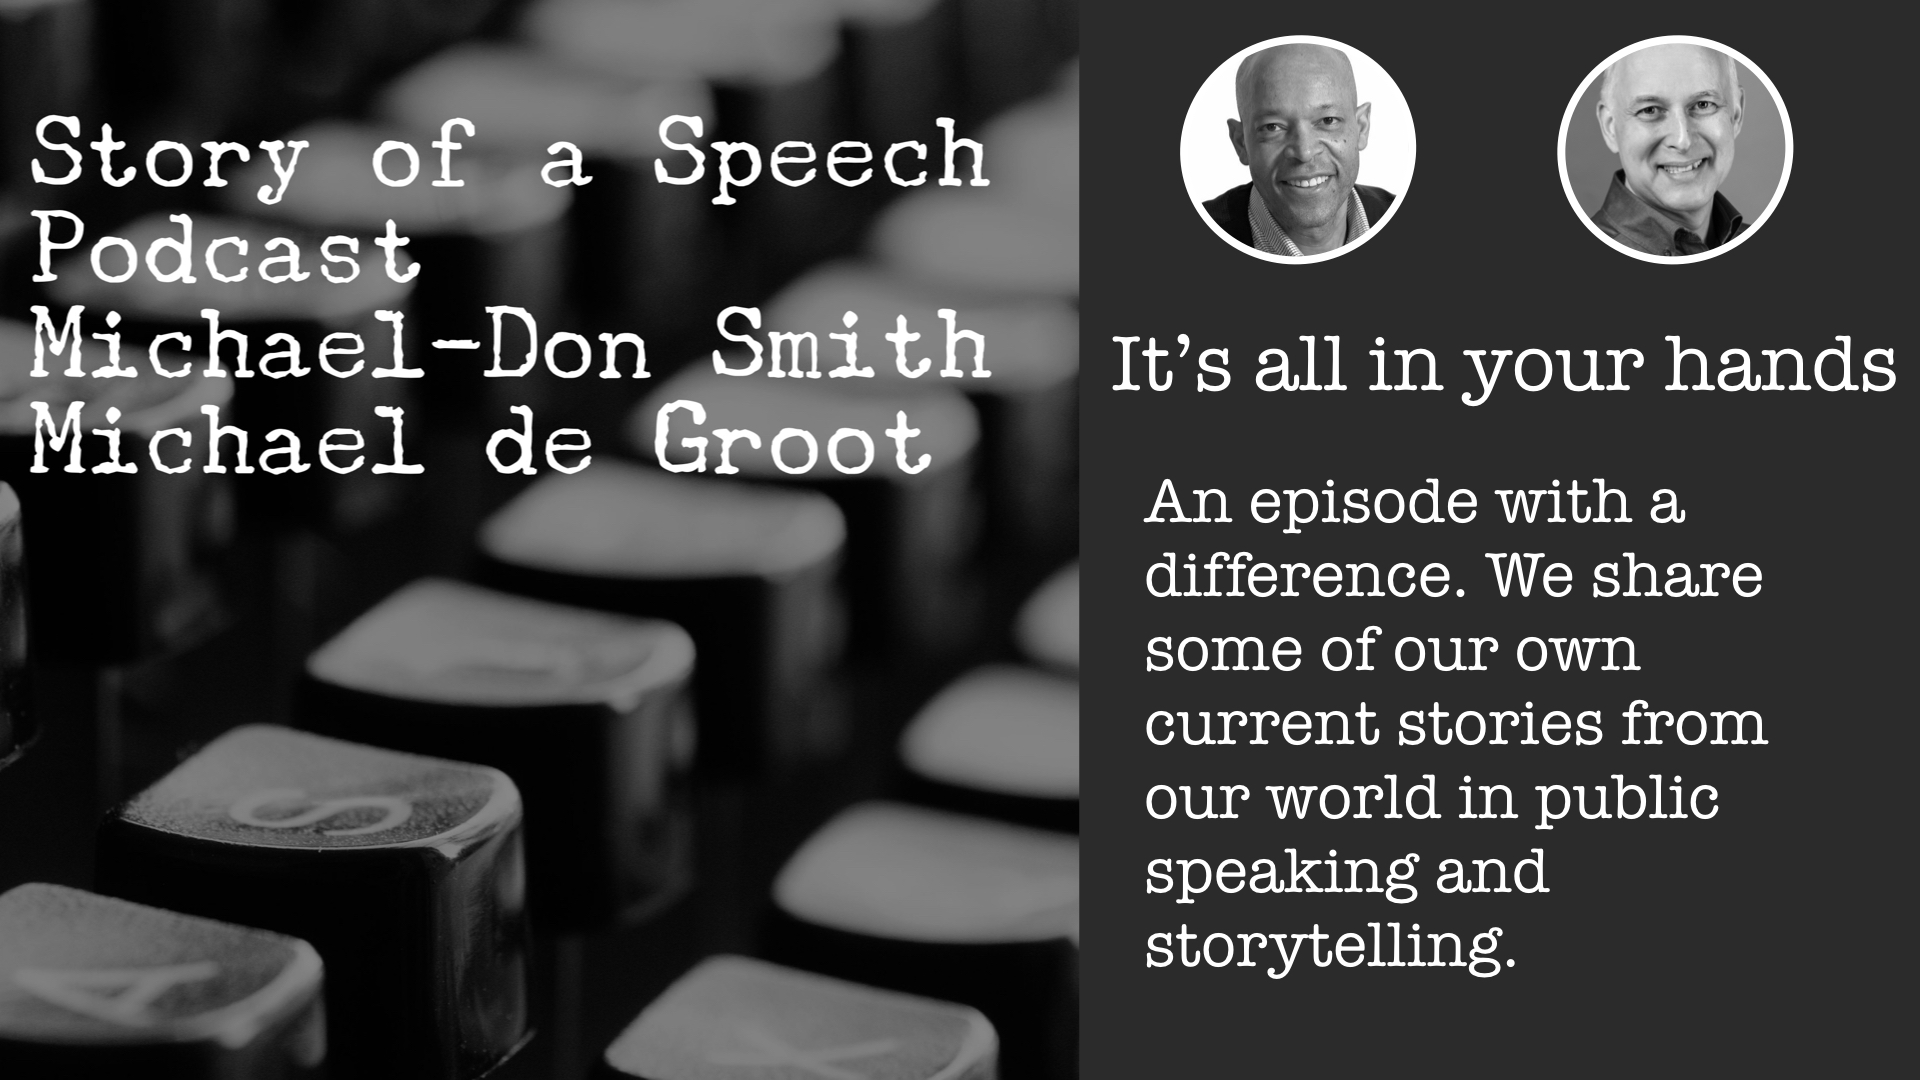 It's all in your hands - story of a speech podcast.jpeg